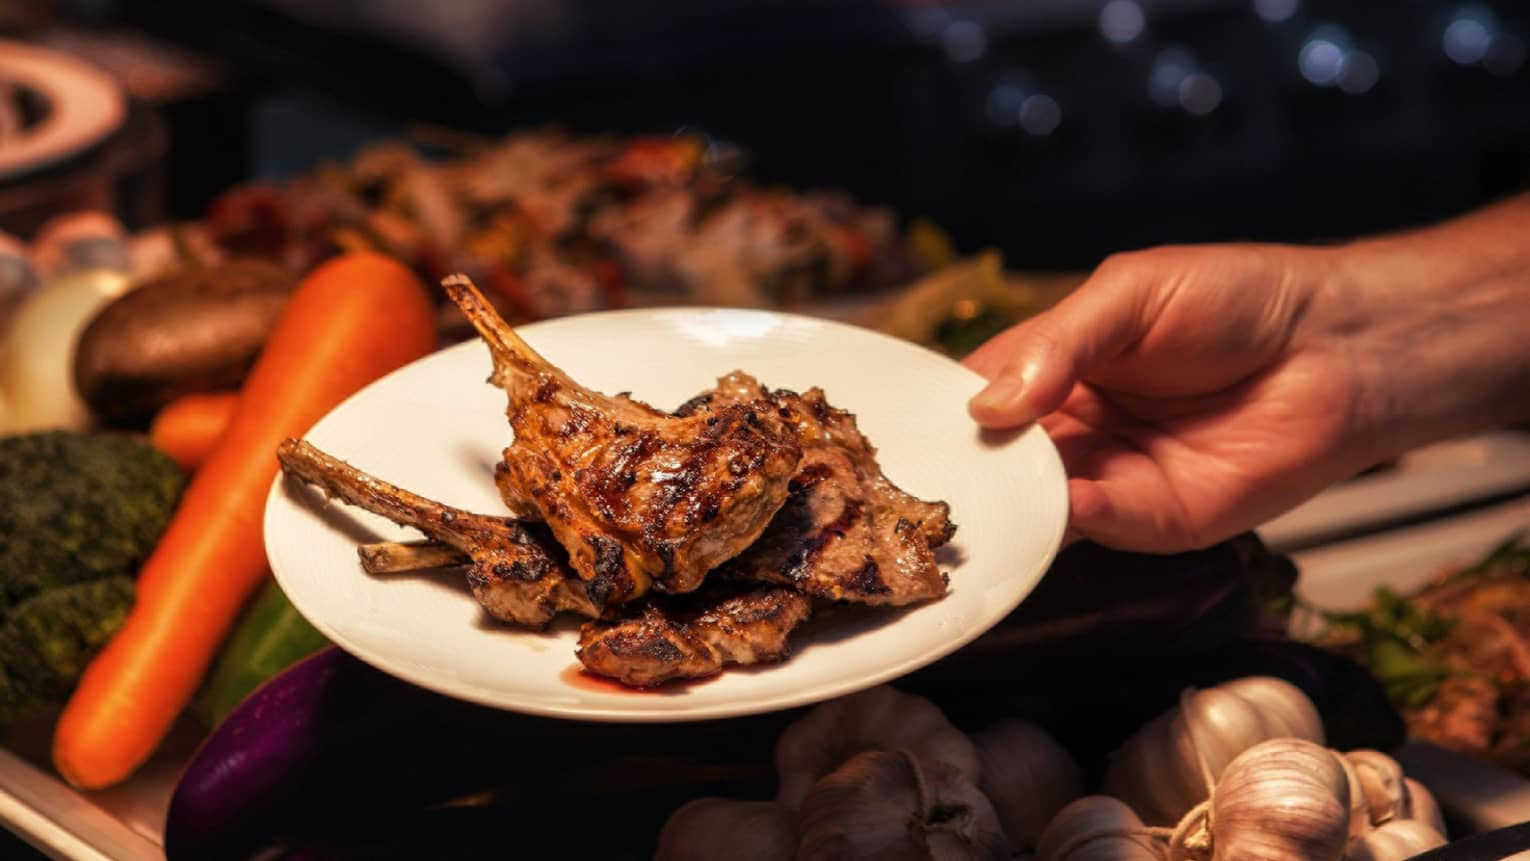 Hand holding barbecued chops on plate over fresh vegetables